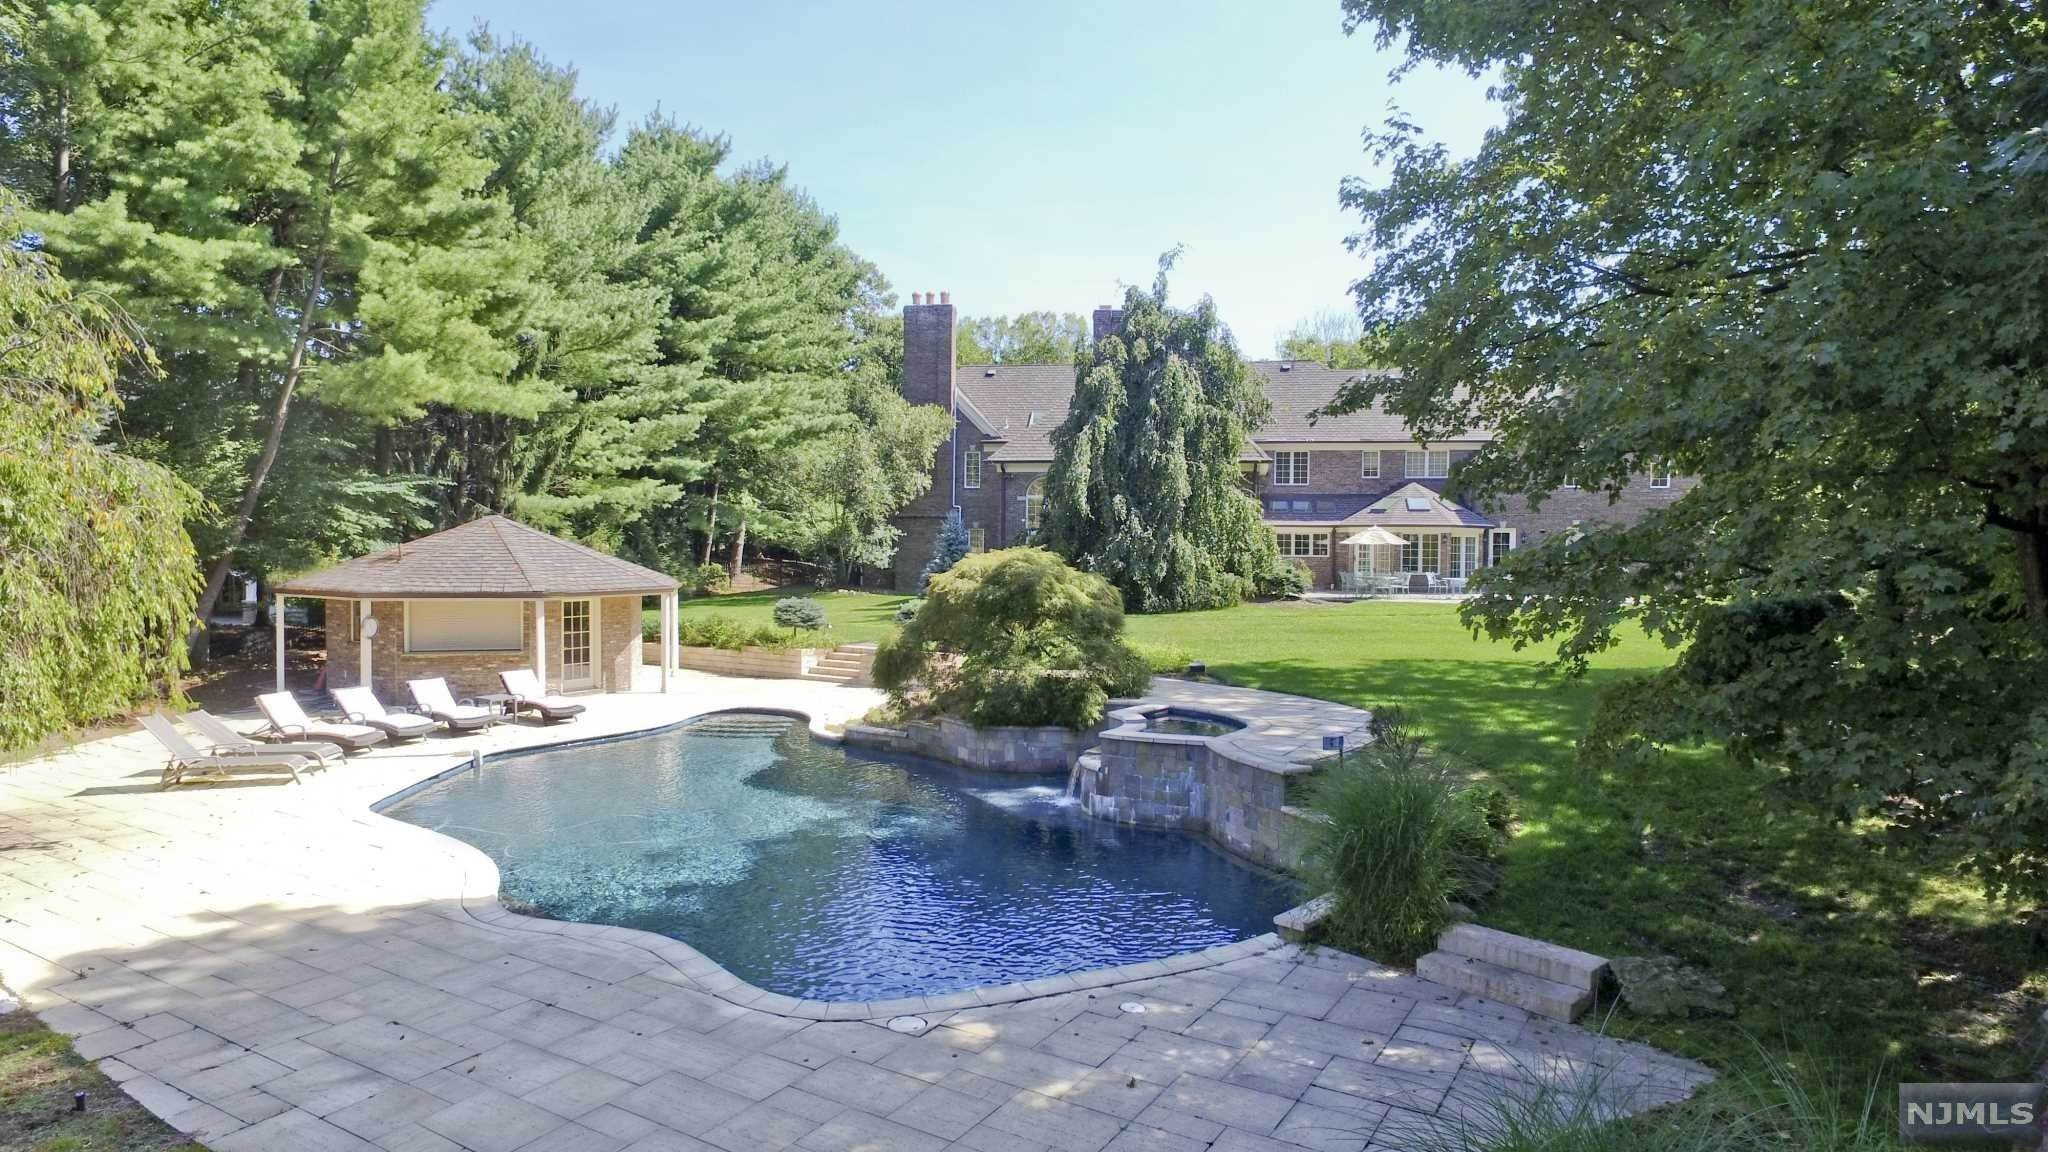 Single Family Home for Sale at 8 Shinnecock Trail Franklin Lakes, New Jersey, 07417 United States